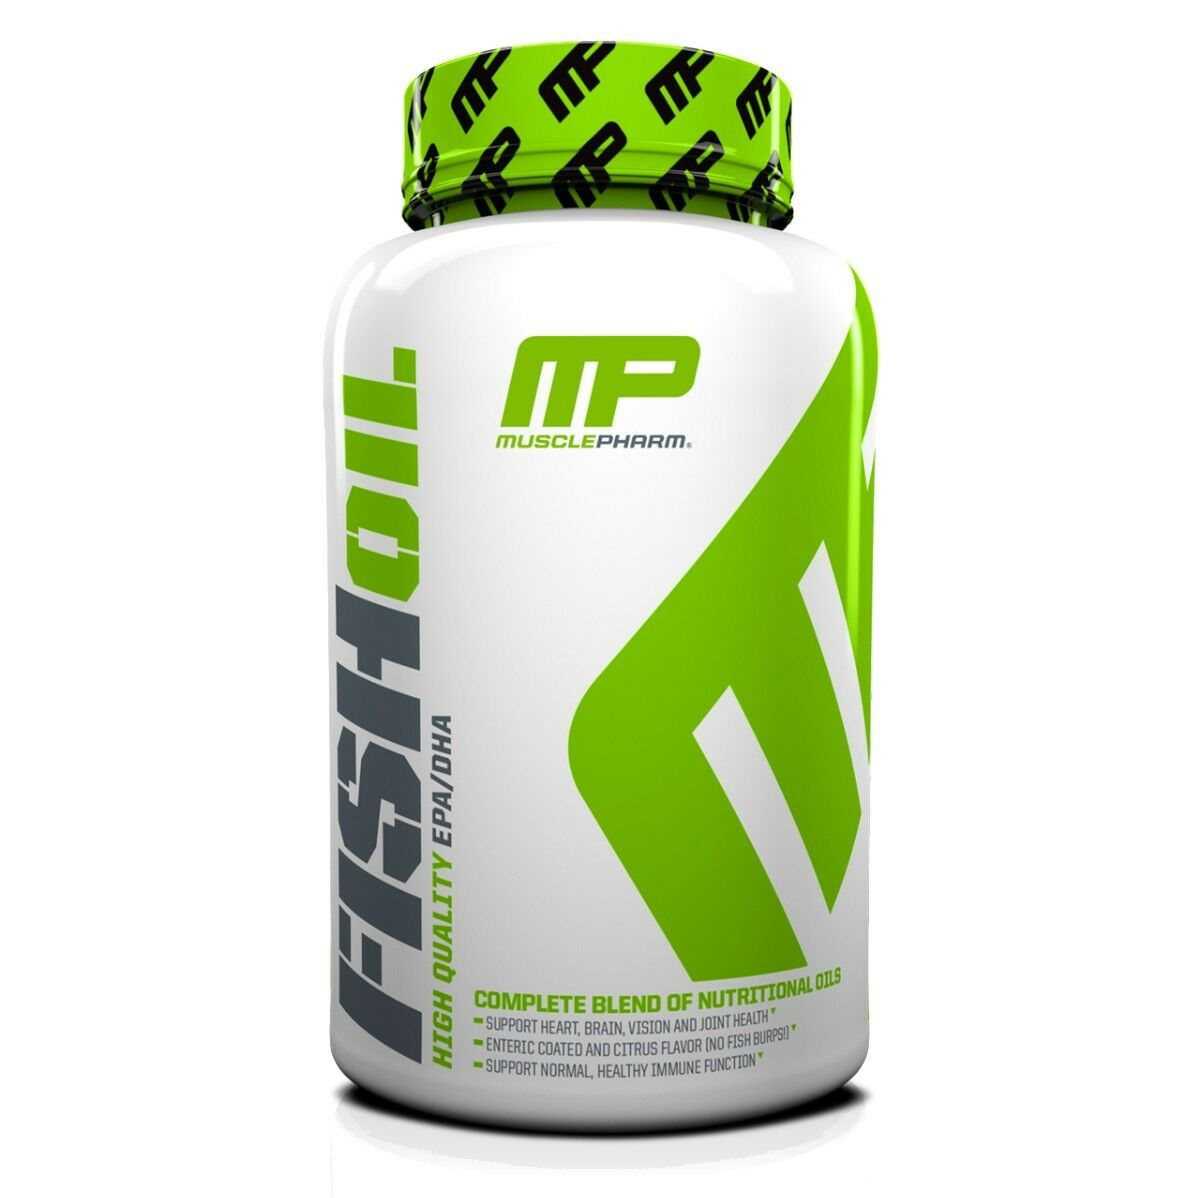 Muscle Pharm - Fish Oil Core Series High Quality EPA/DHA - 9